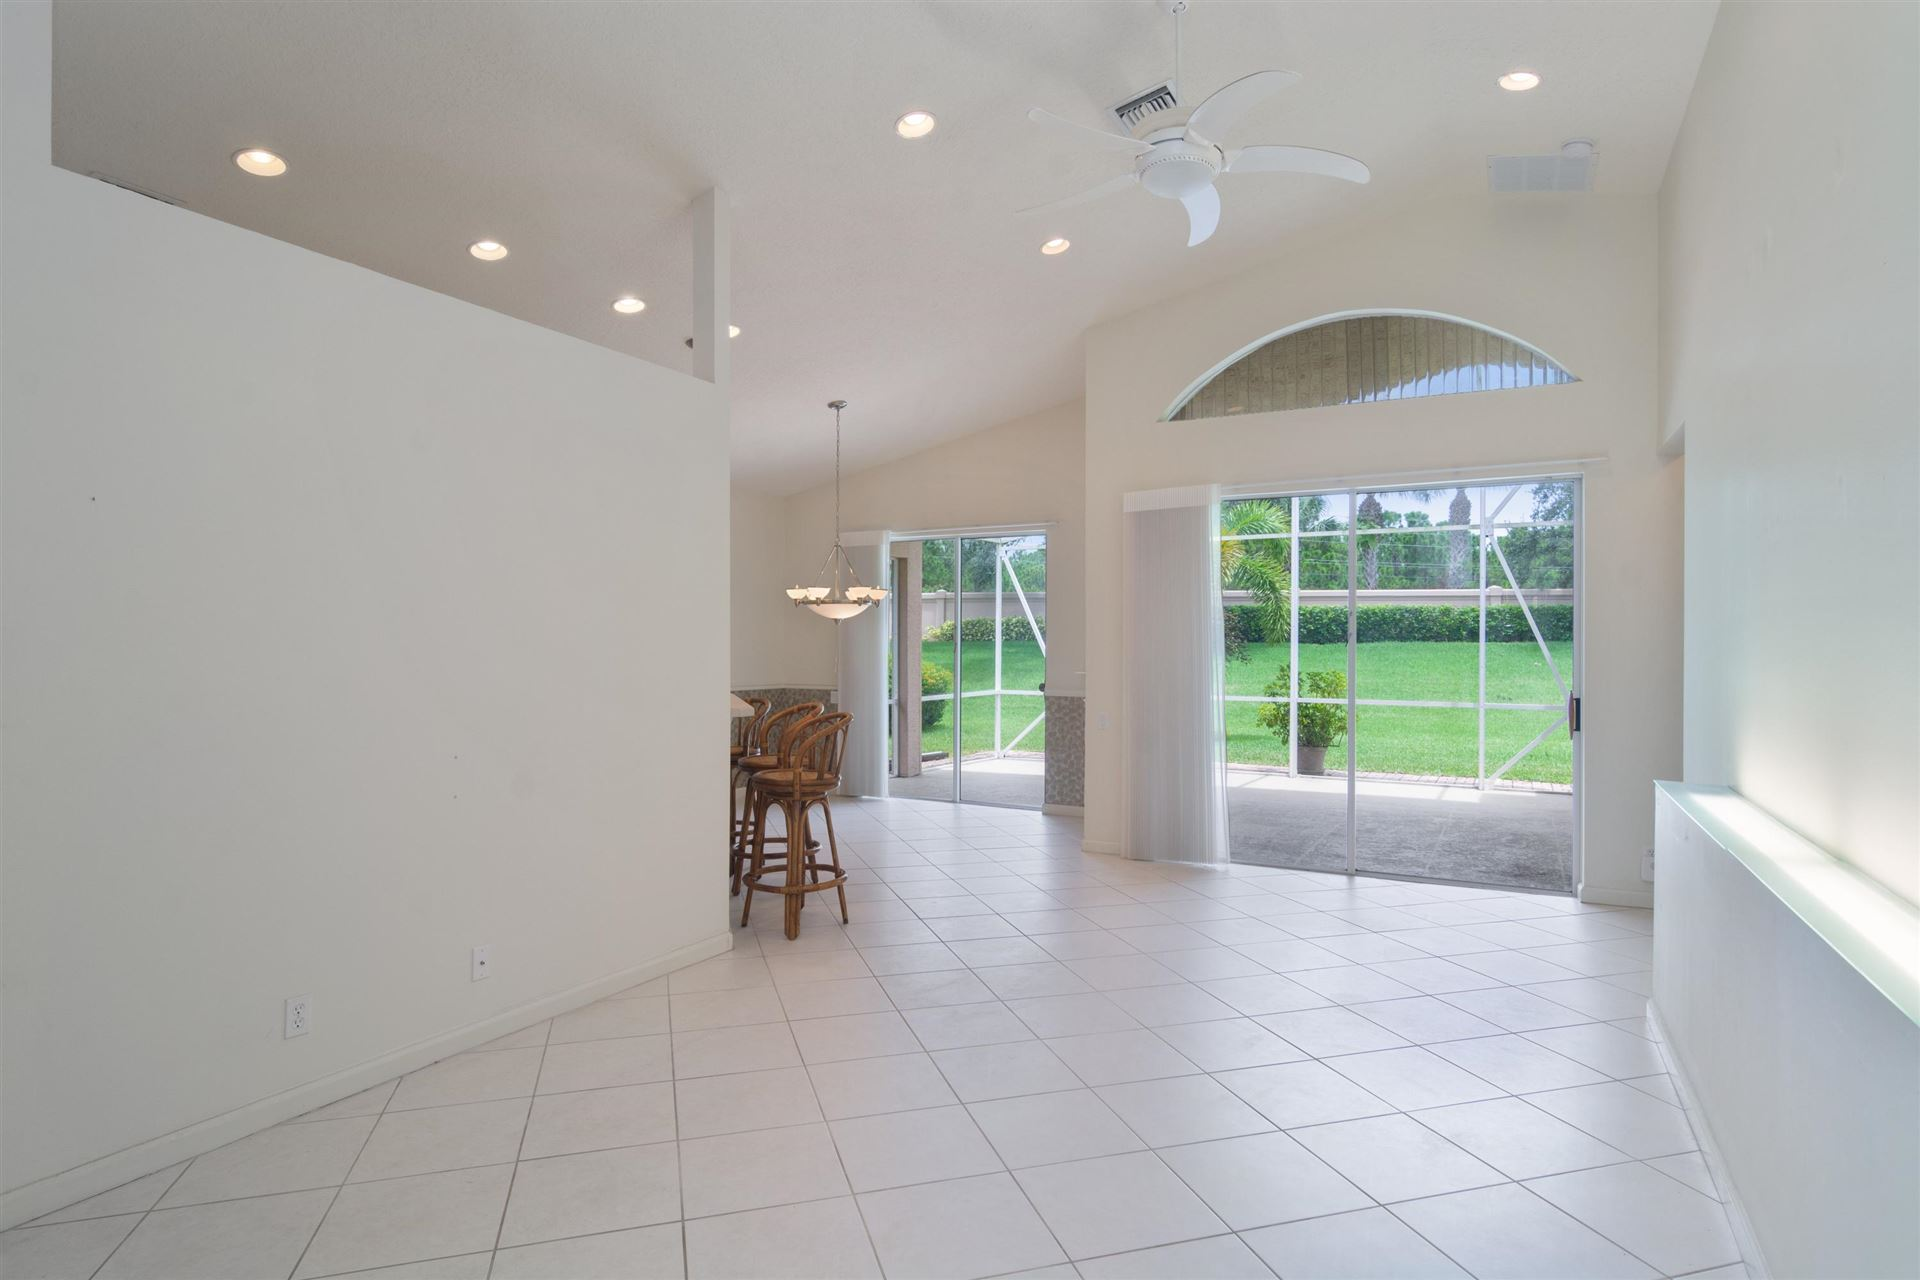 Photo of 320 NW Shoreview Drive, Port Saint Lucie, FL 34986 (MLS # RX-10642778)